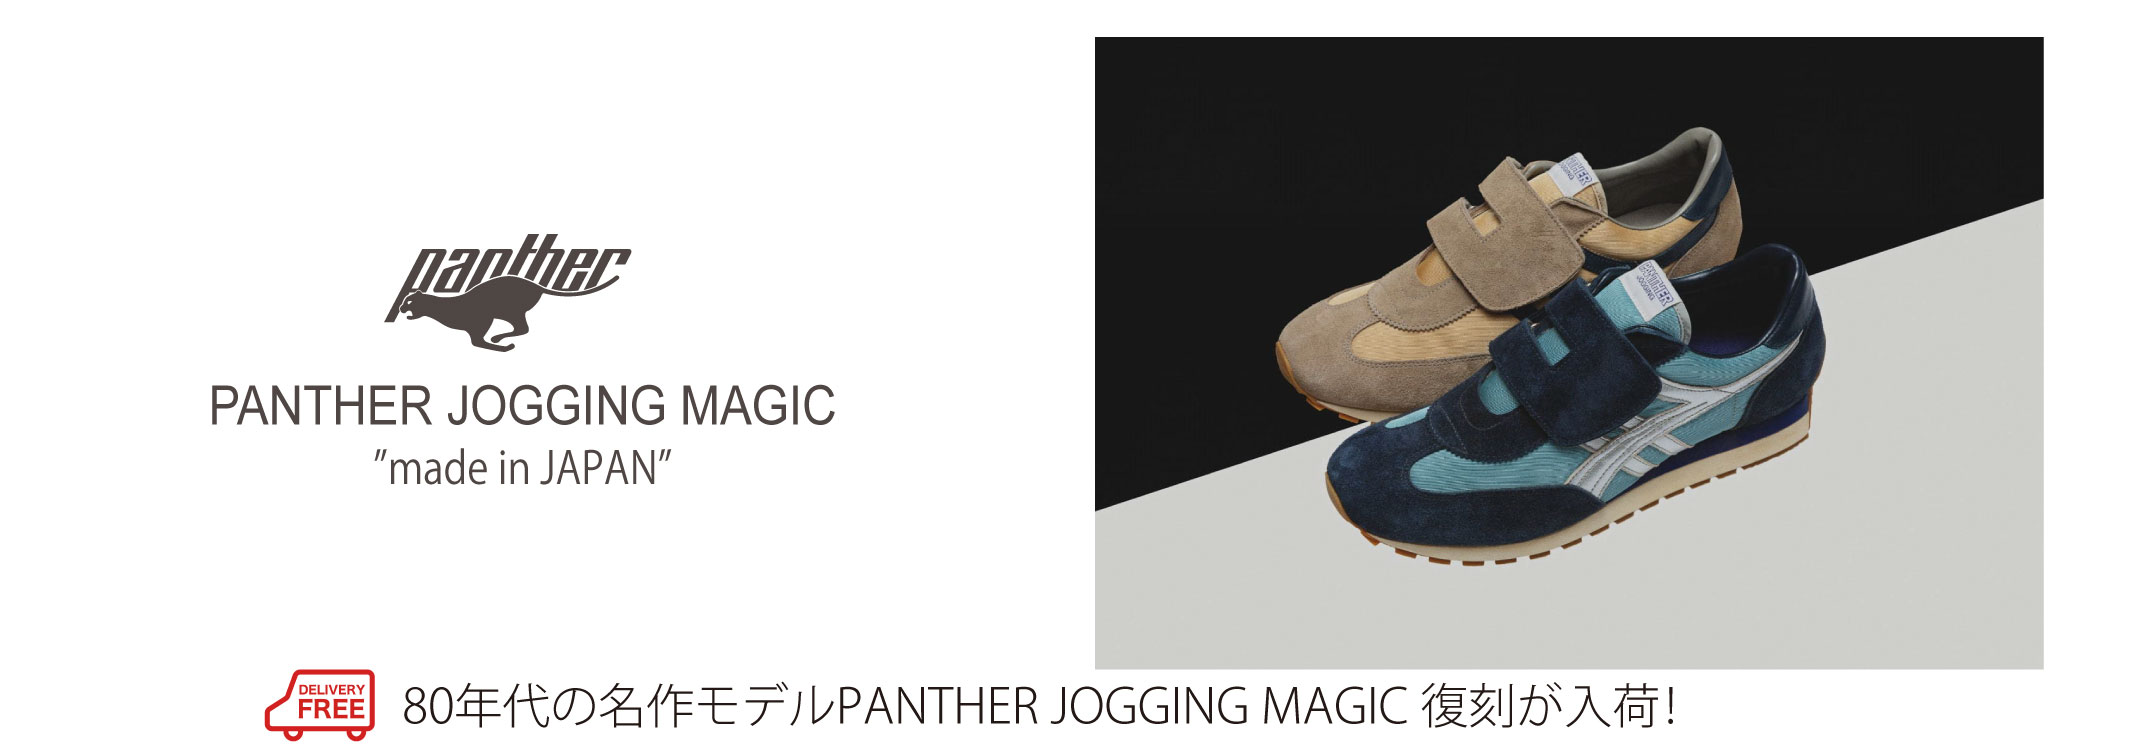 panter-jogging-magic-4